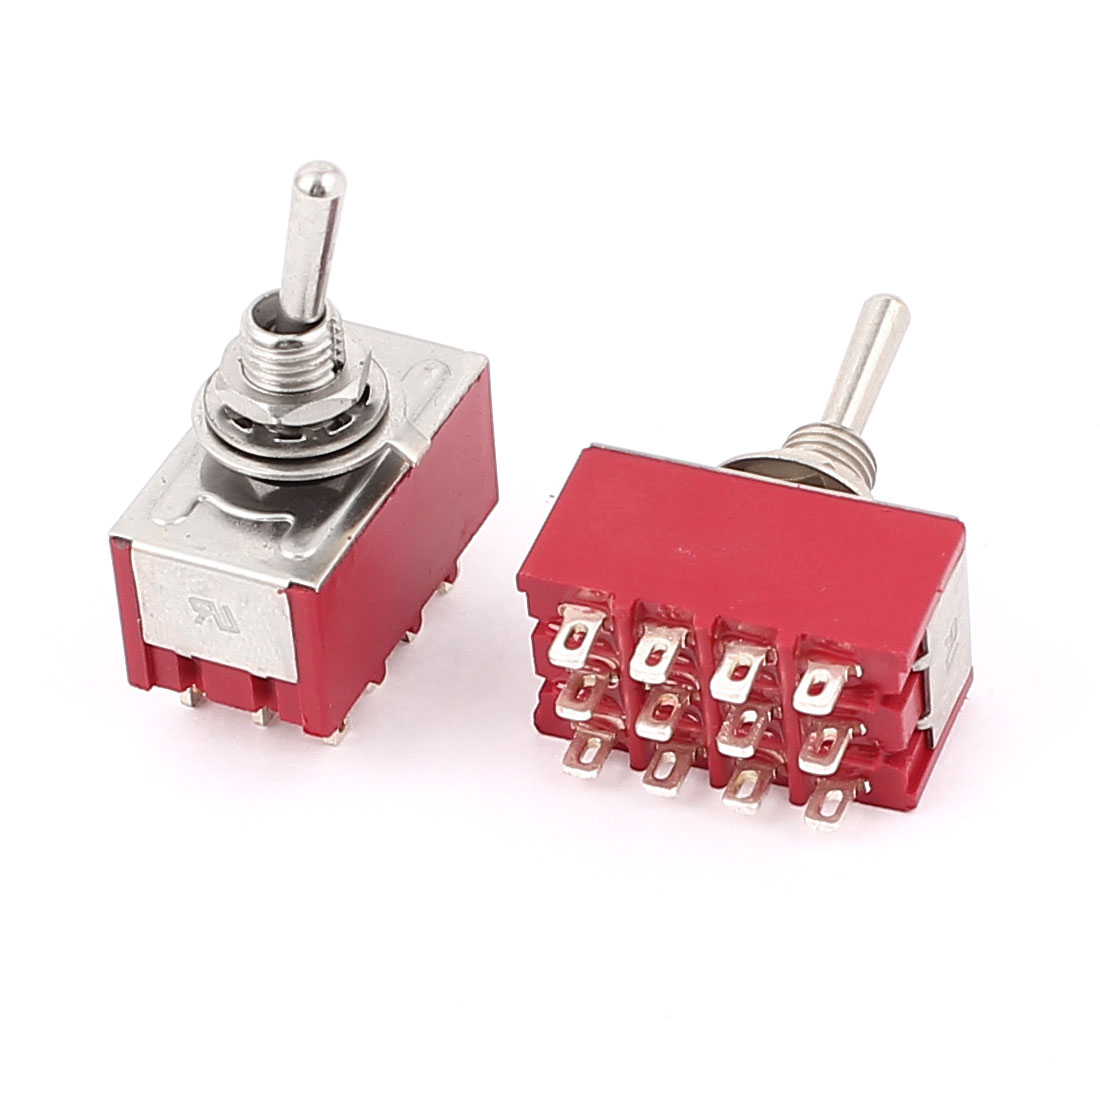 AC 250V/2A 125V/6A ON/ON 2 Position 4PDT 12 Terminals Toggle Switch Red 2Pcs